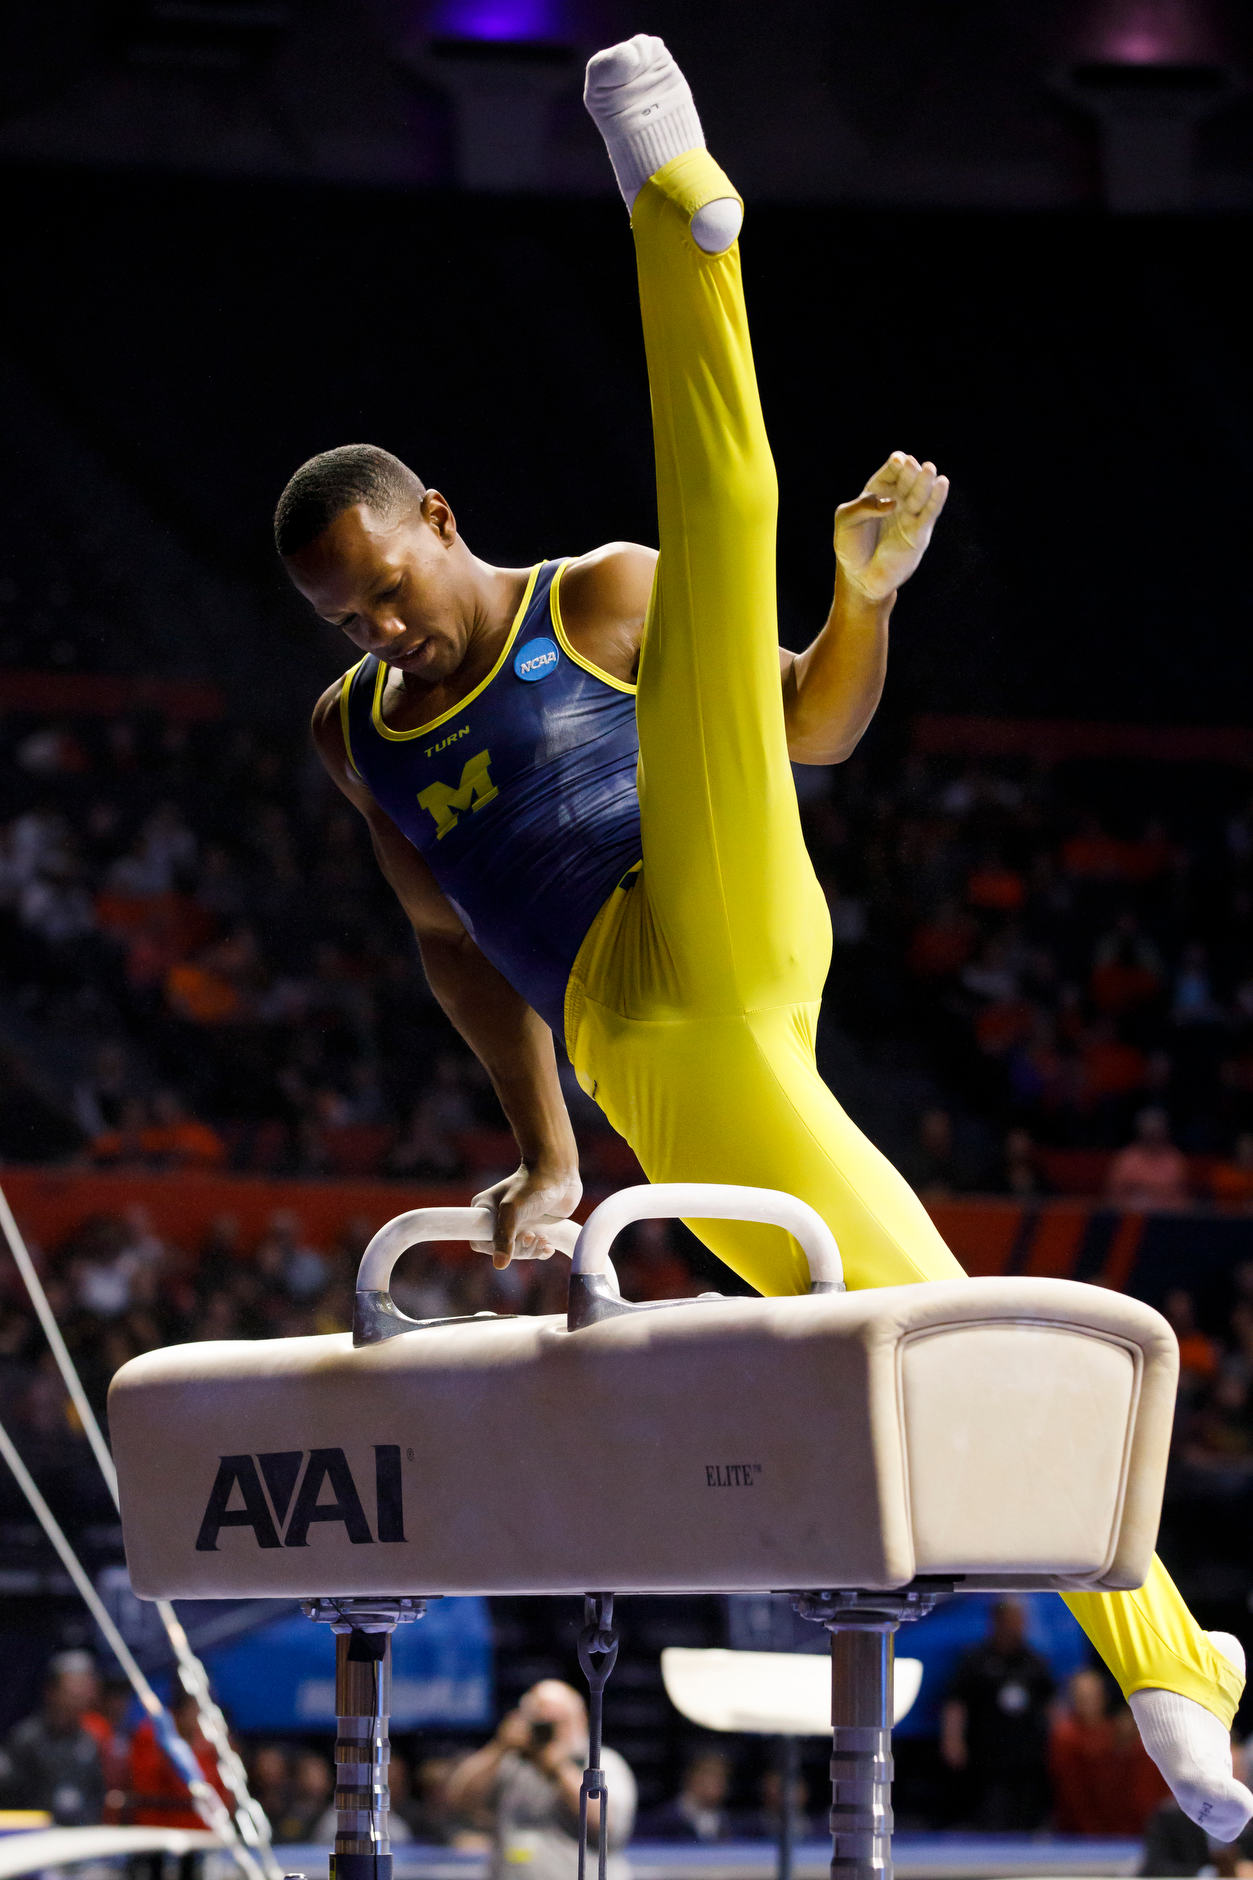 Michigan's Emyre Cole competes on the pommel horse at the NCAA Men's Gymnastics Championships on Saturday, April 20, 2019, at the State Farm Center in Champaign, Illinois. (Photo by James Brosher)